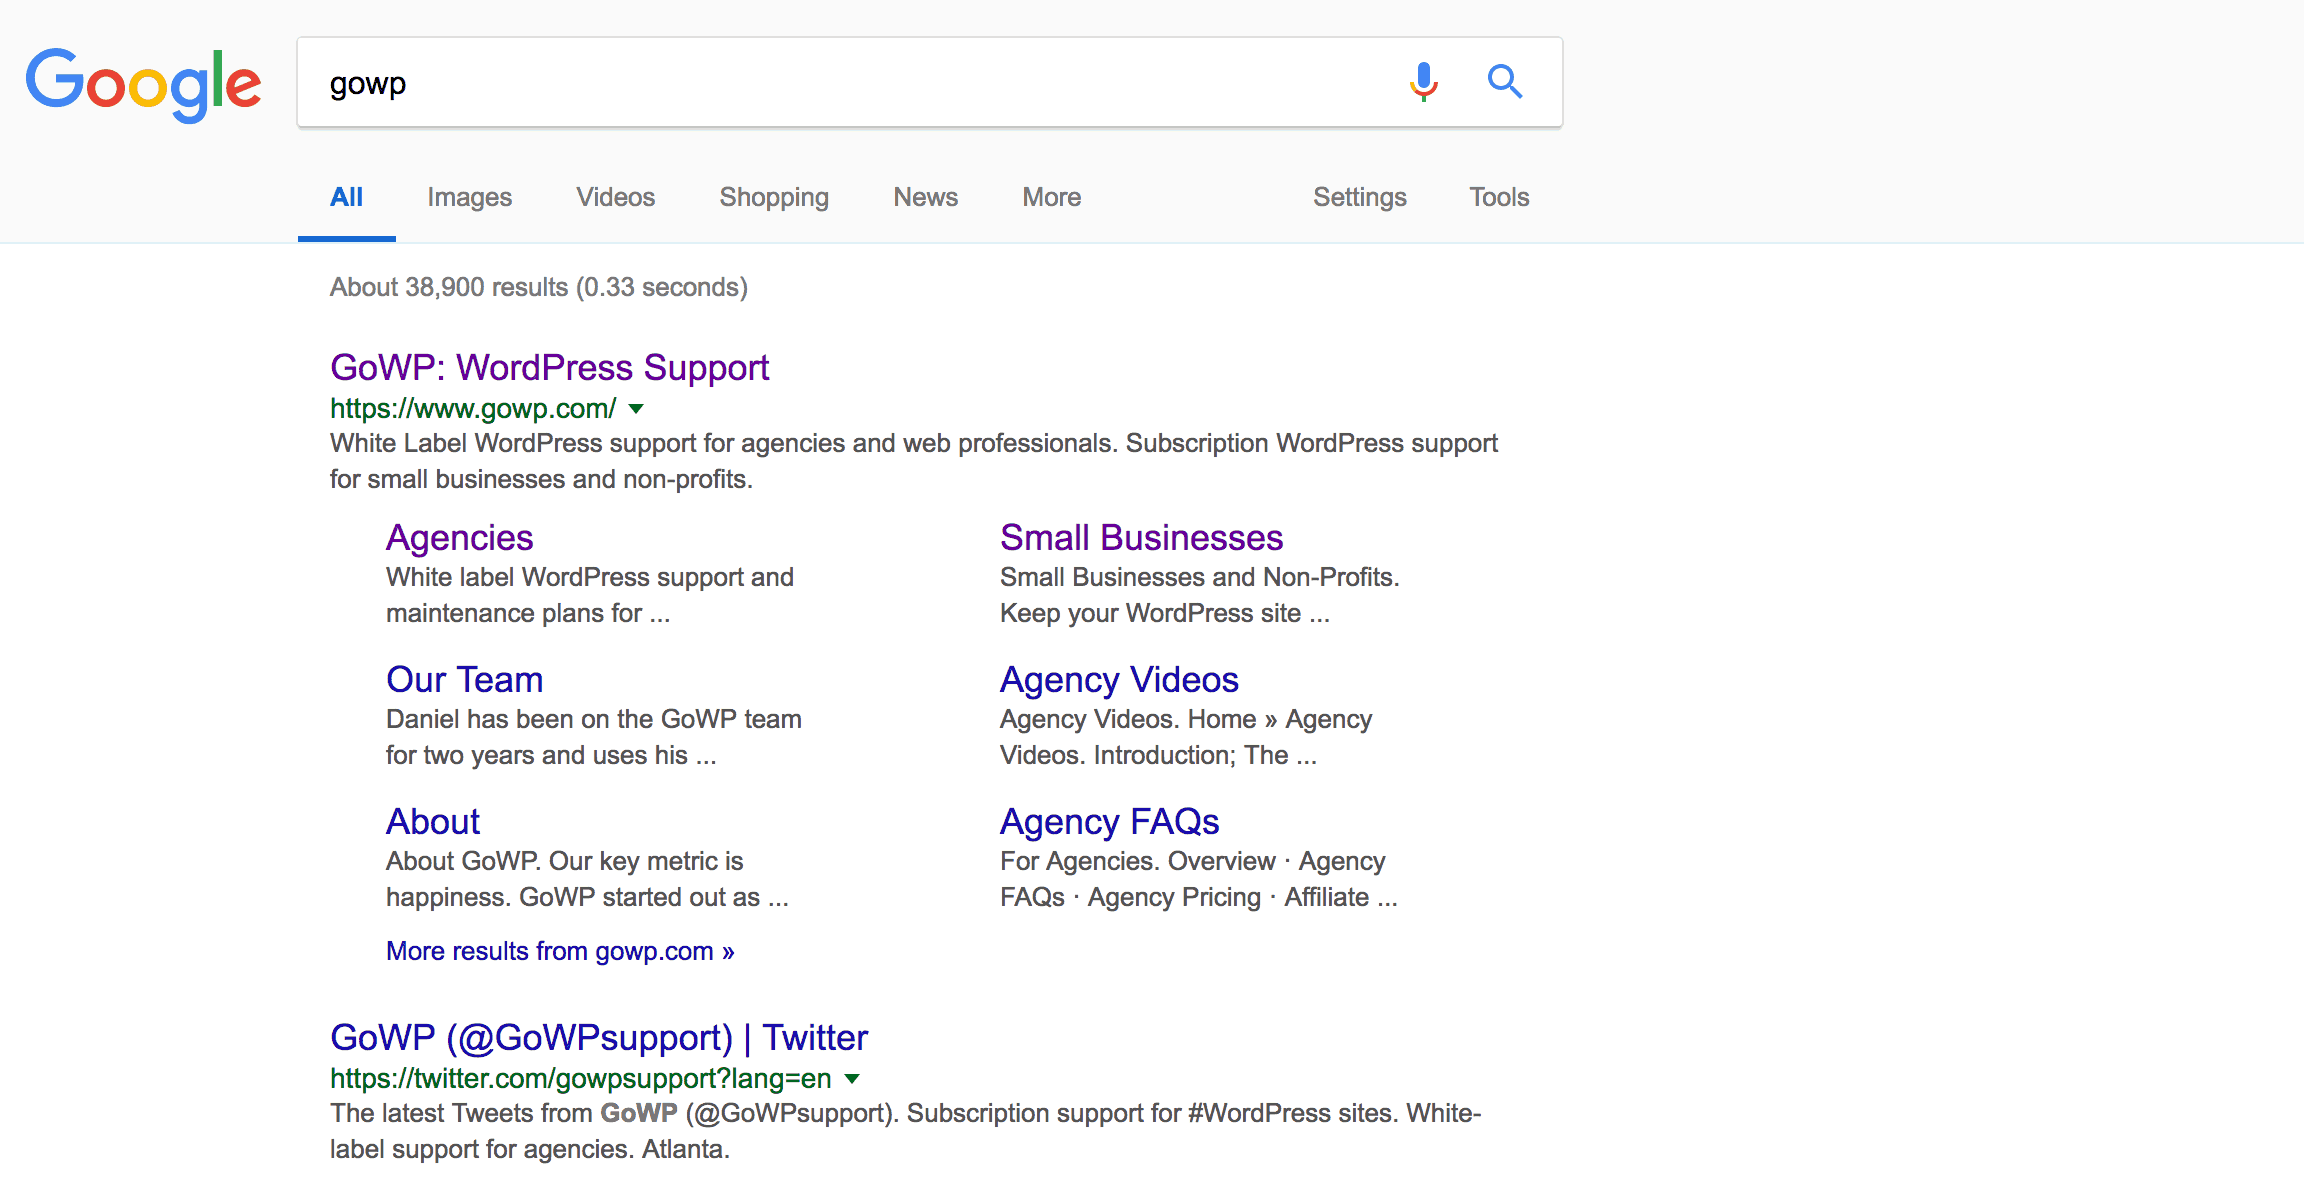 An example of search results in Google.